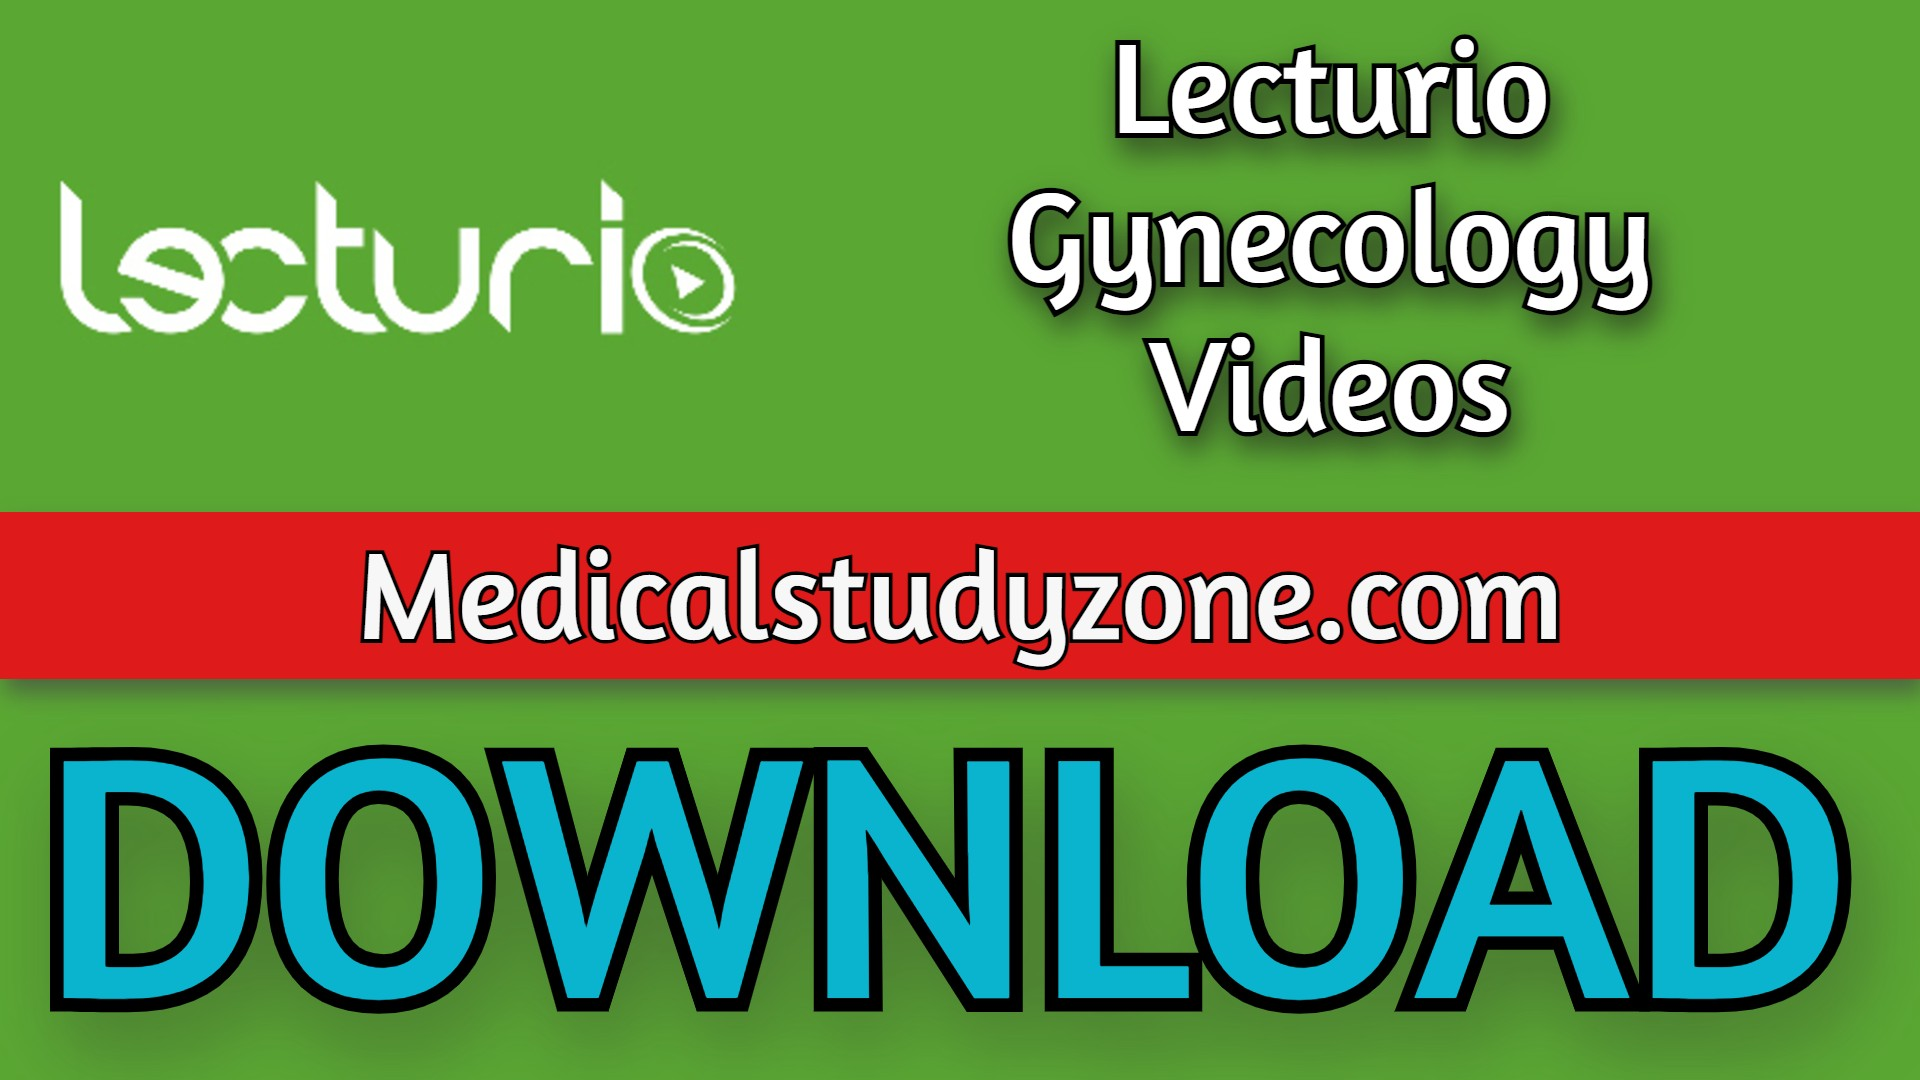 Lecturio Gynecology Videos 2021 Free Download